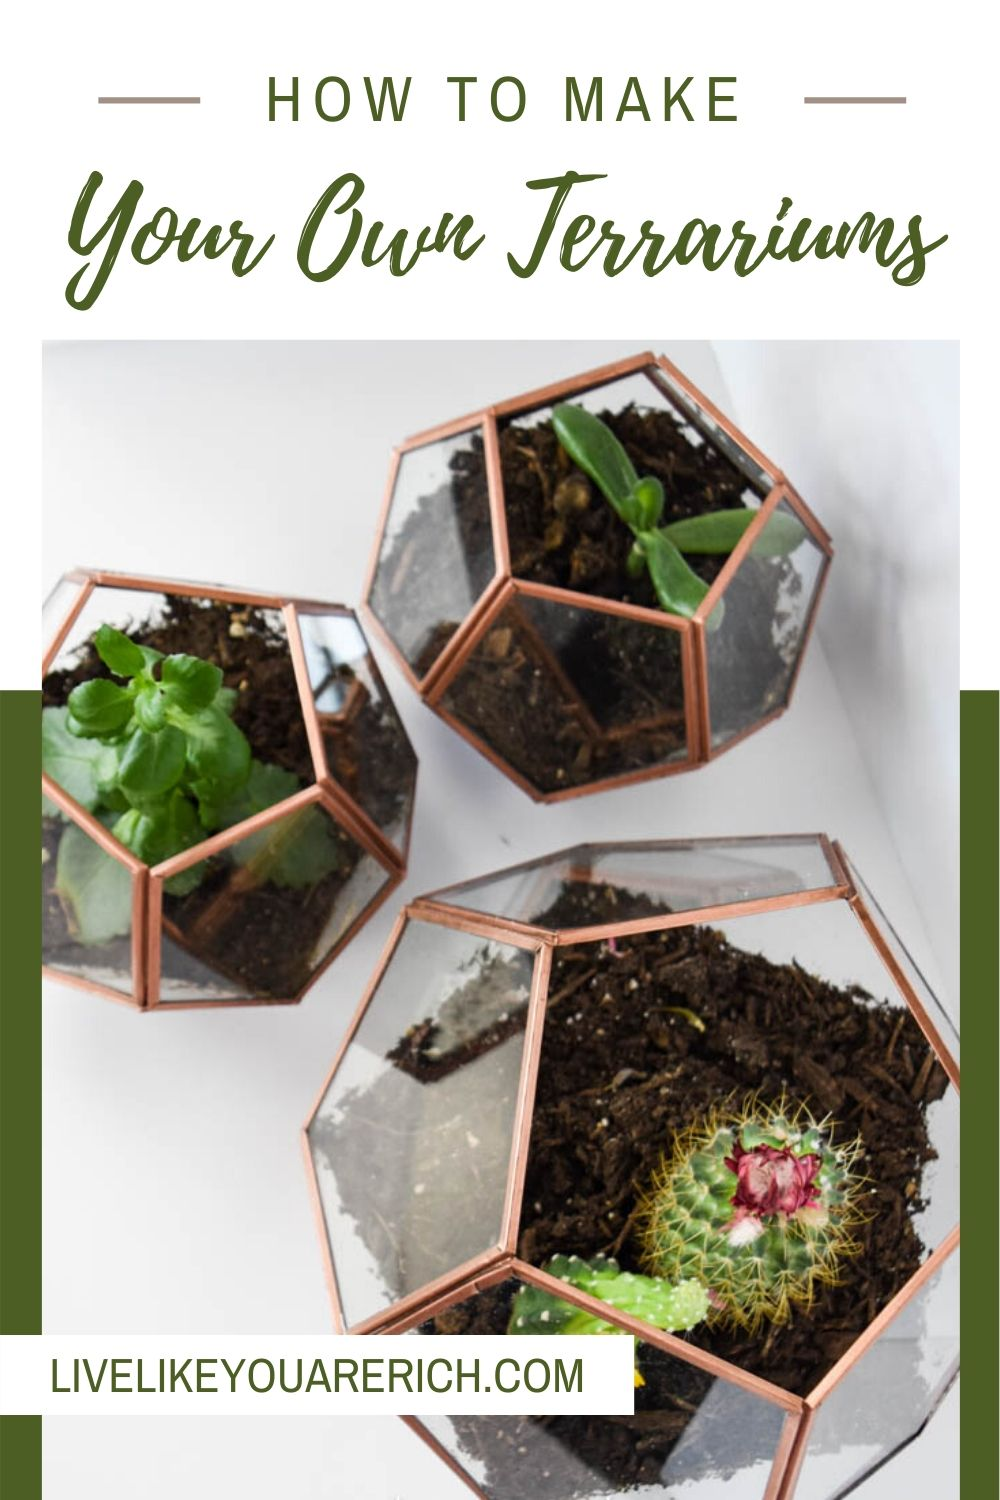 This DIY Copper Geo Terrariums has been a great DIY project and decor for my home. They were easy to make and only took about 20 minutes each.